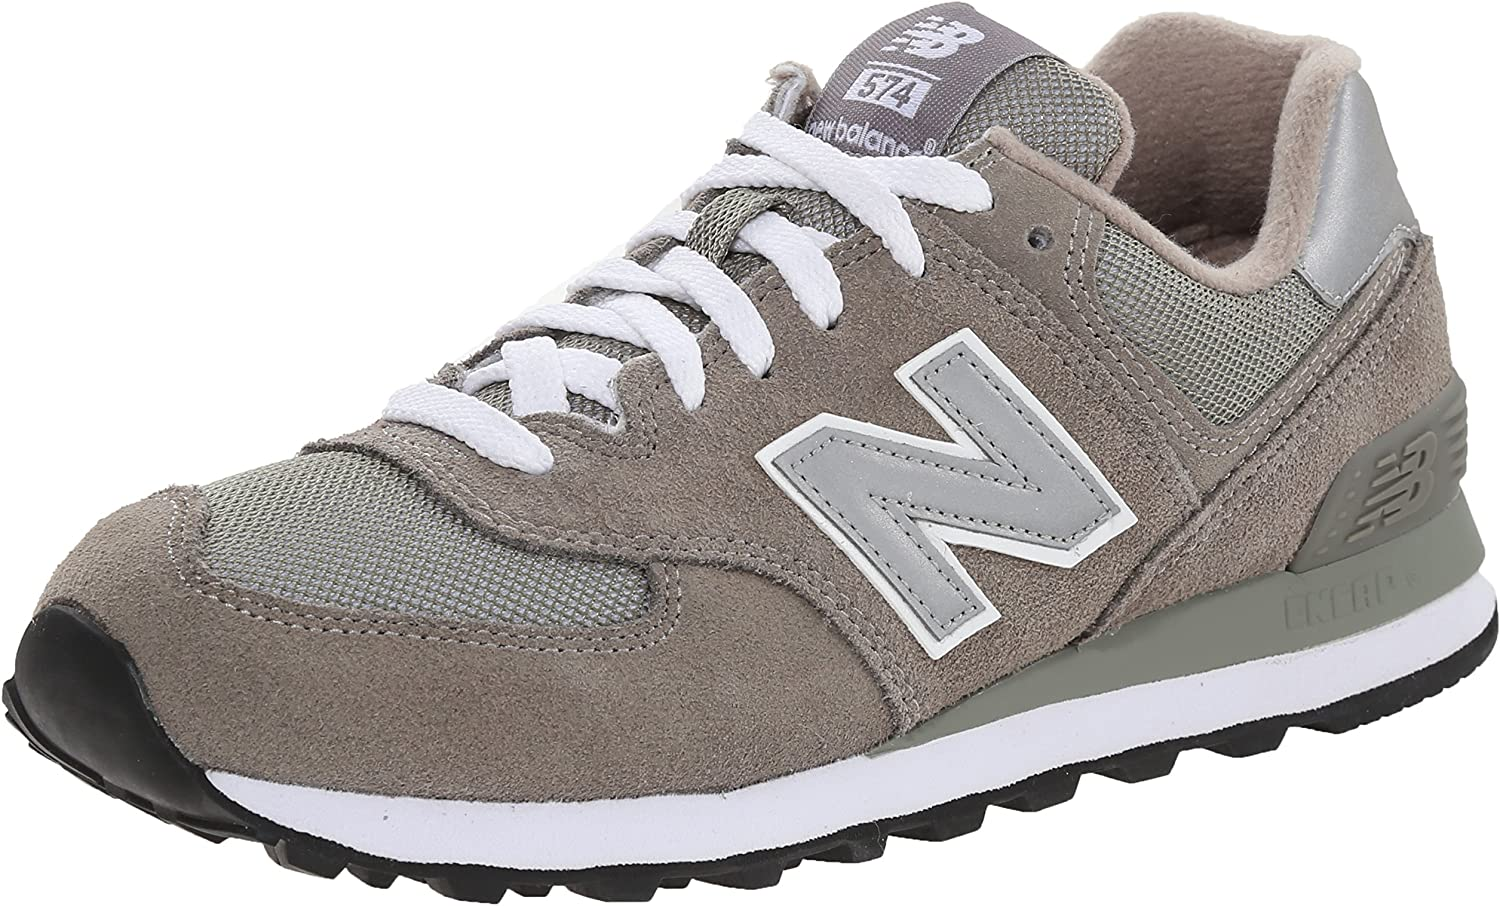 New Balance Men's ML574 Stadium Jacket Running Shoe